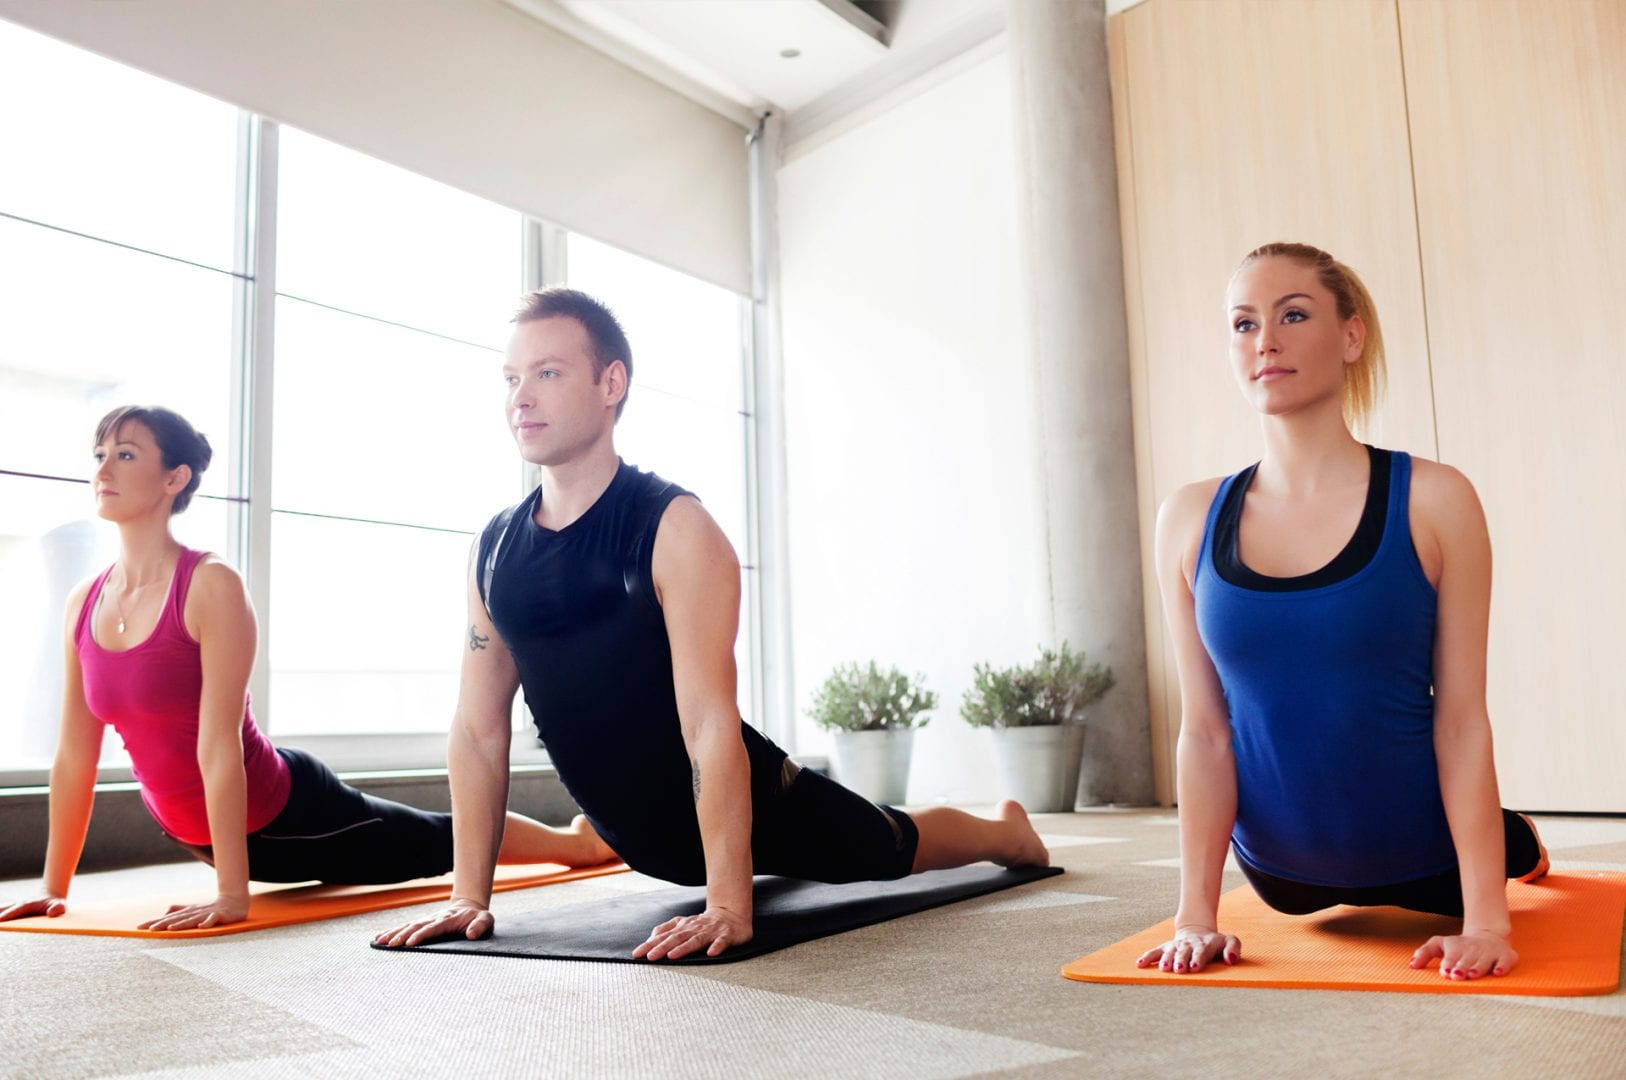 gym-members-on-yoga-mats-in-yoga-pose-in-fitness-center-studio